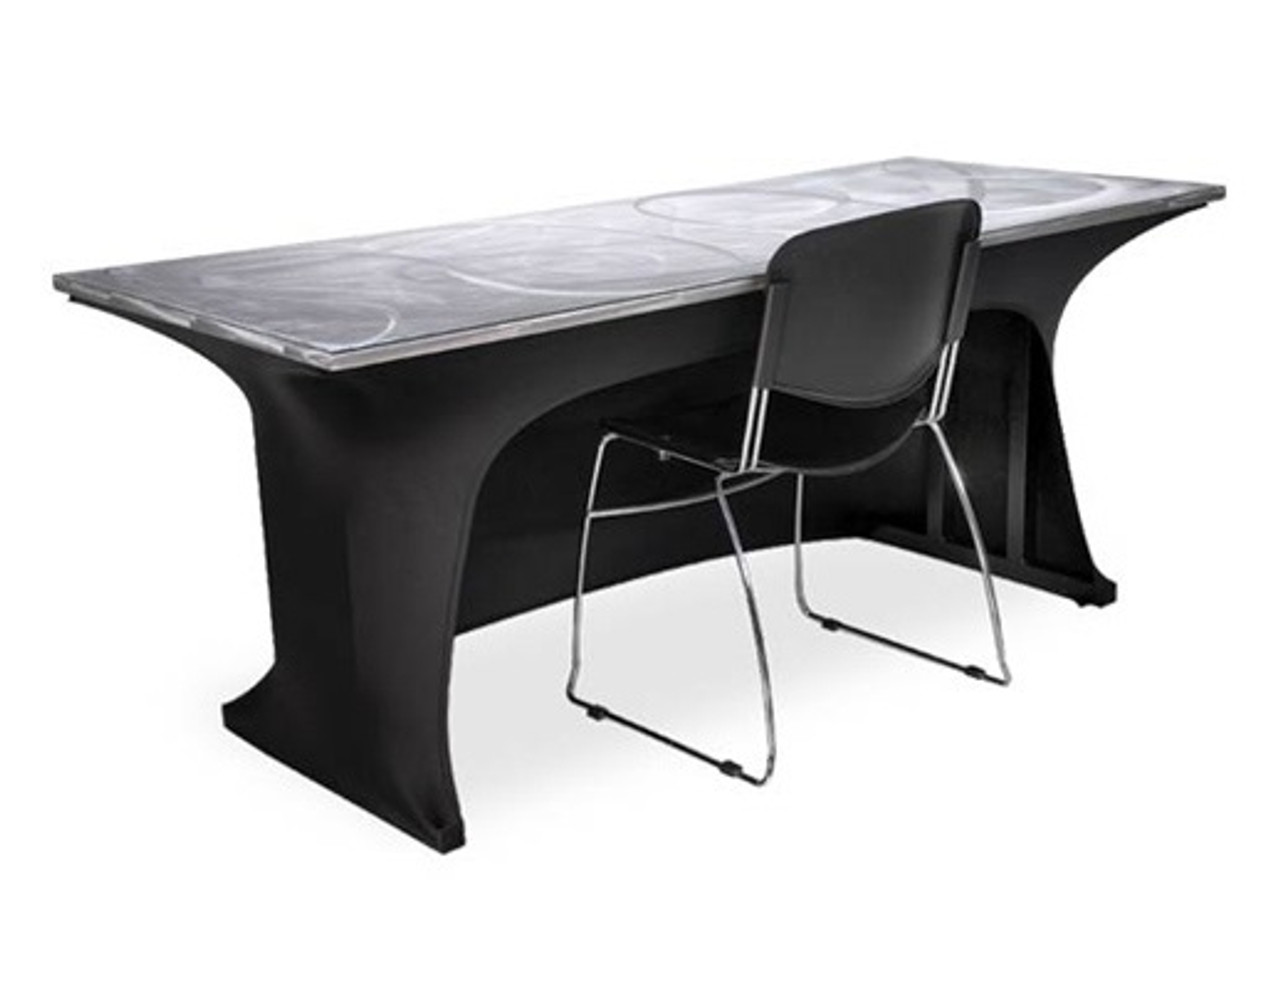 Southern Aluminum Span186 3s 3 Sided Modesty Spandex Table Skirt 18x72 L Affordable Tables Southern Aluminum Products